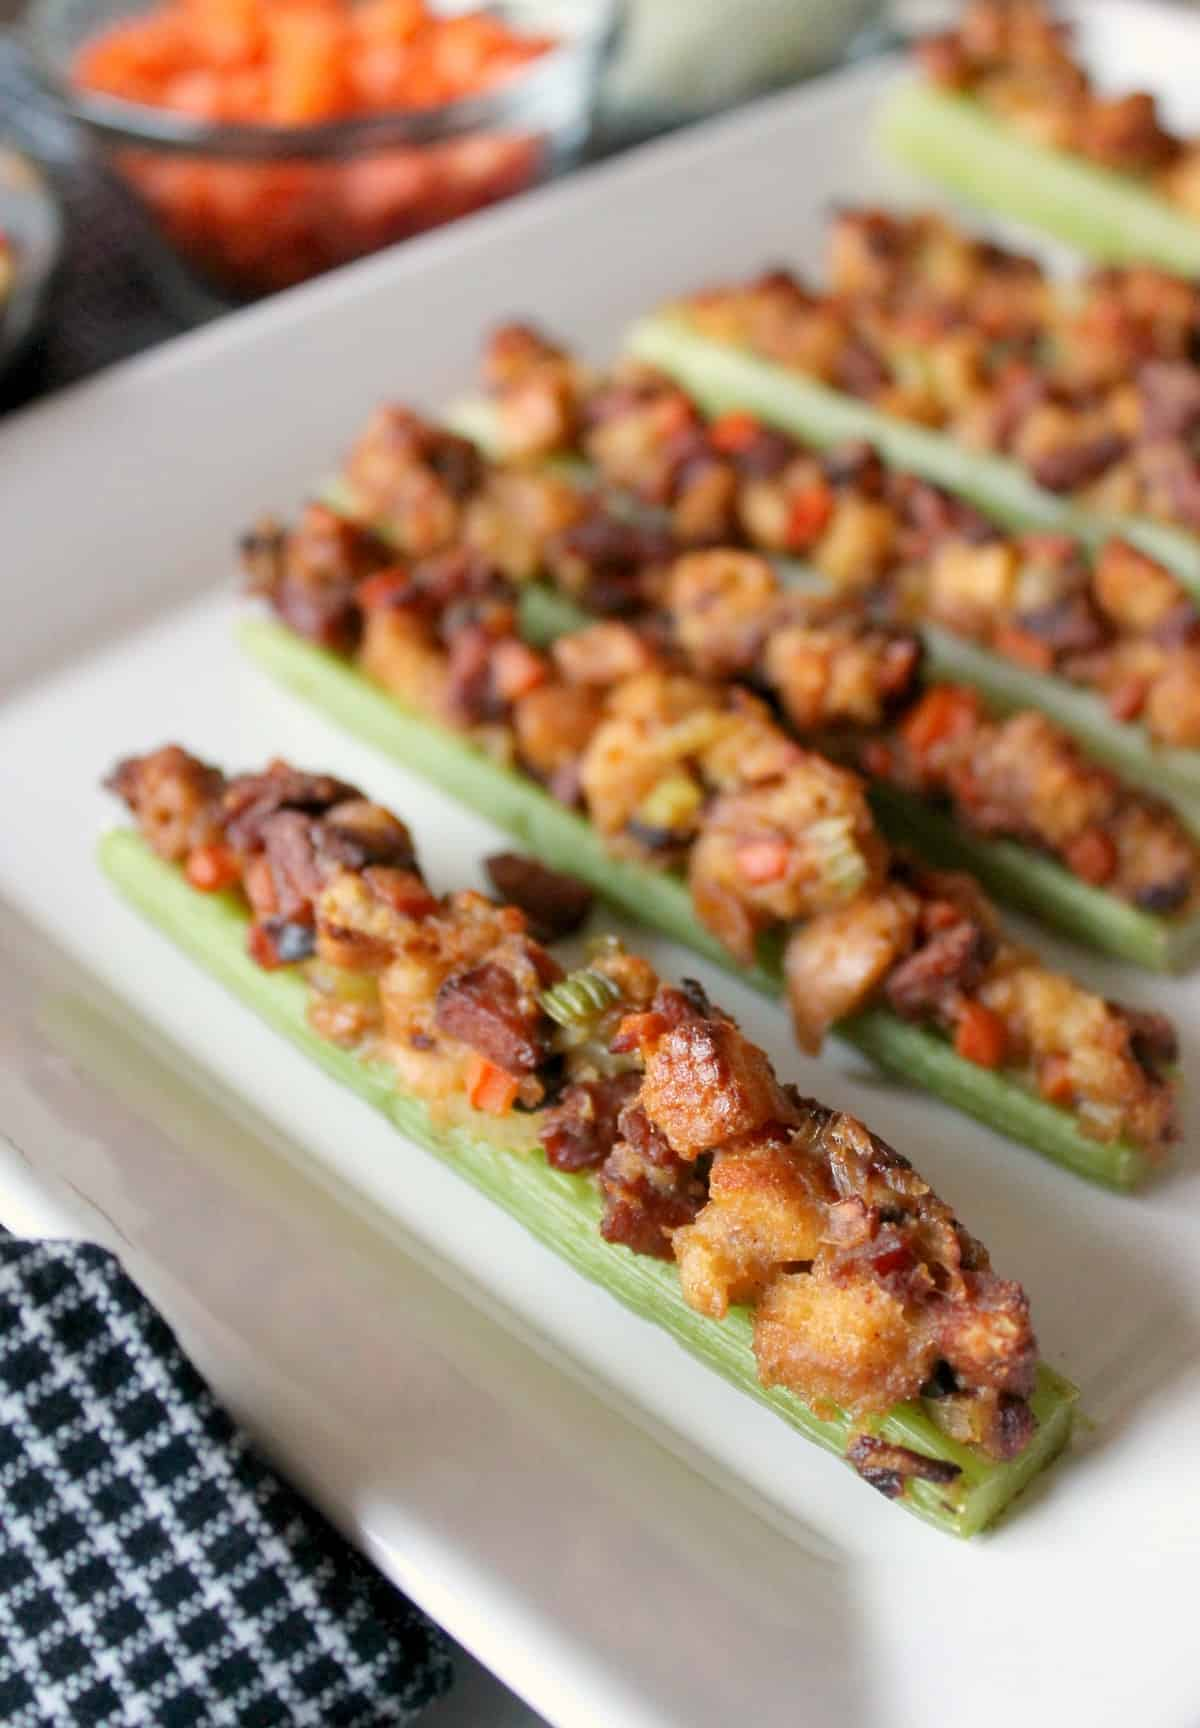 Roasted Celery Boats with Cajun Stuffing via The Kitchen Prep | www.thekitchenprepblog.com